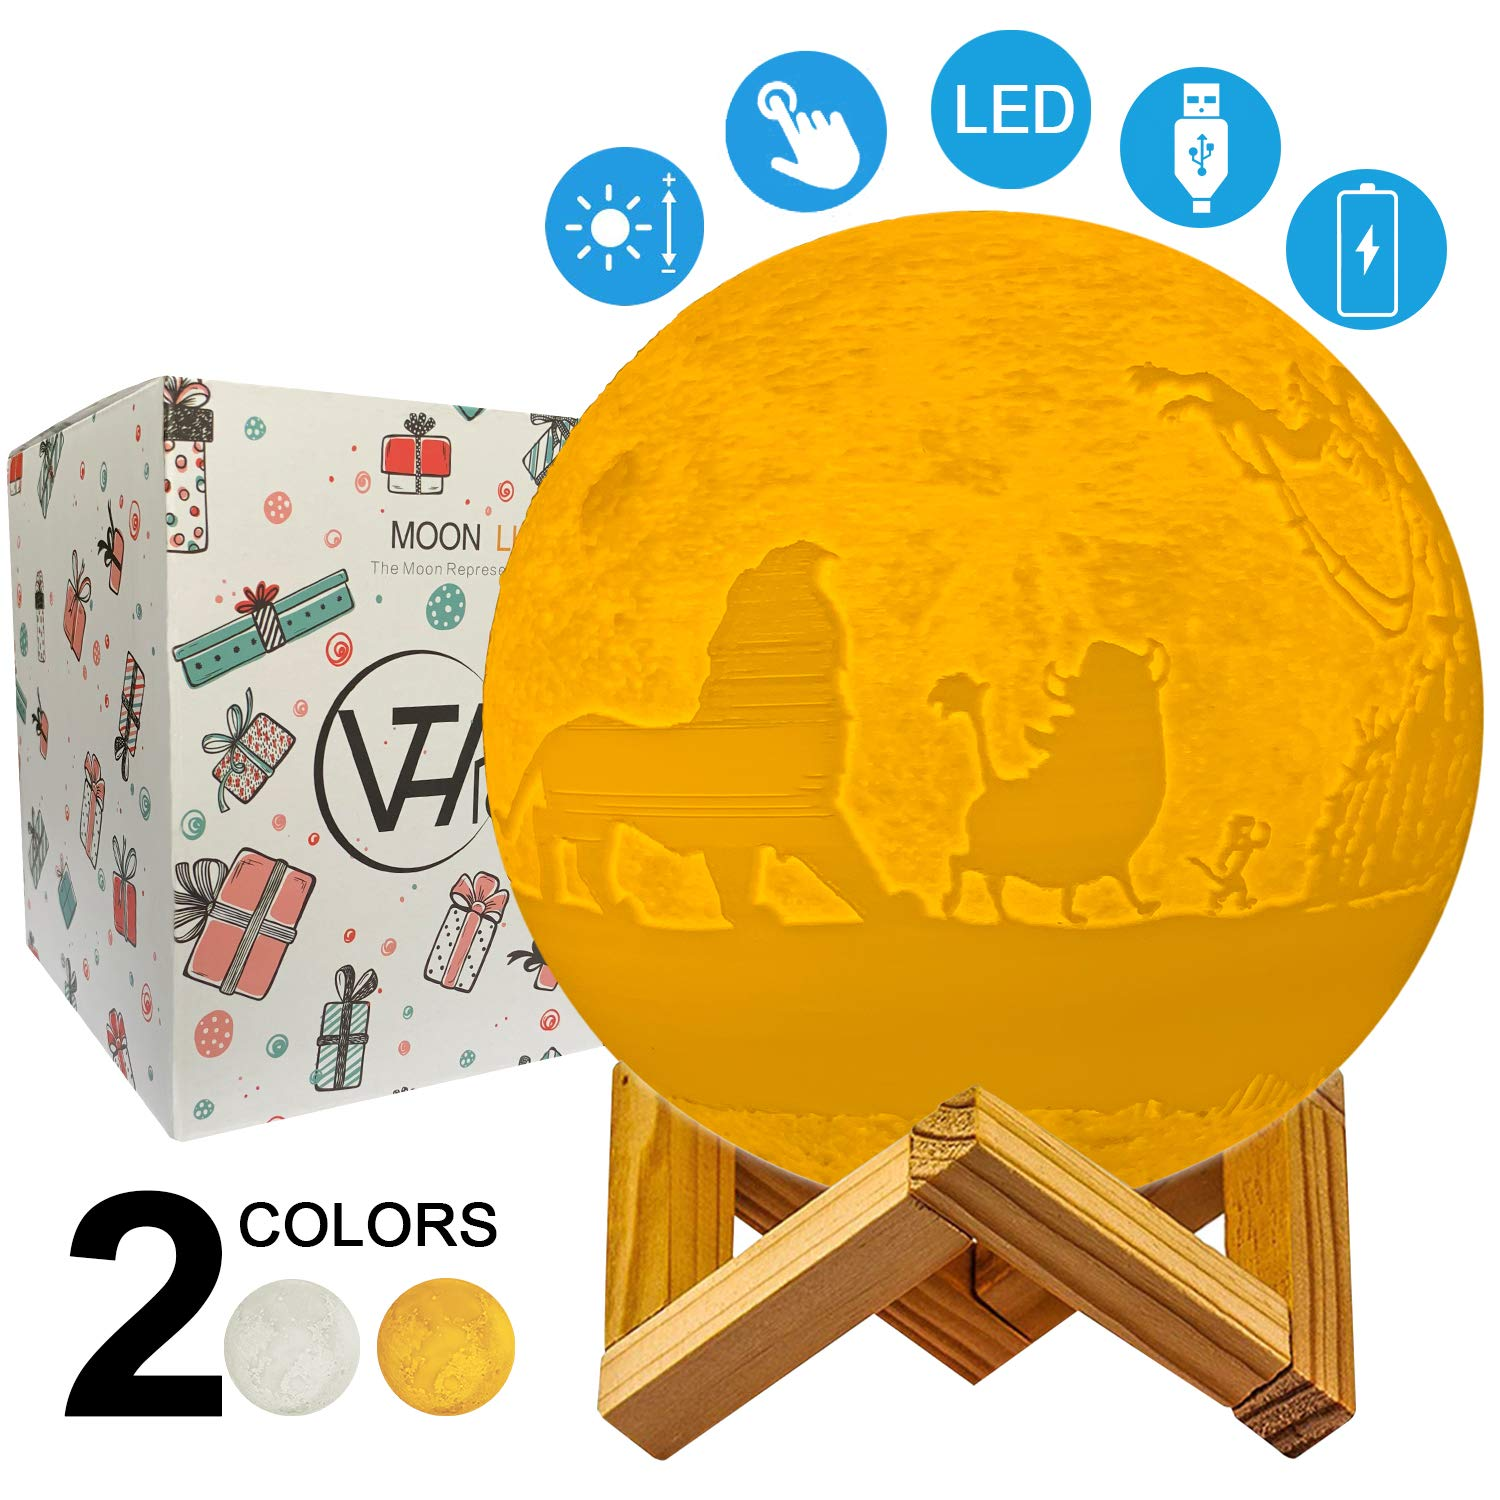 VTH Global Hakuna Matata 3D Printed LED Moon Lamp Night Lights Touch Control Moon Light King Lions Birthday Gifts for Men Women Kids Mom Dad Girls Boys Daughter Son Husband Wife Nursery Room Decor by VTH Global